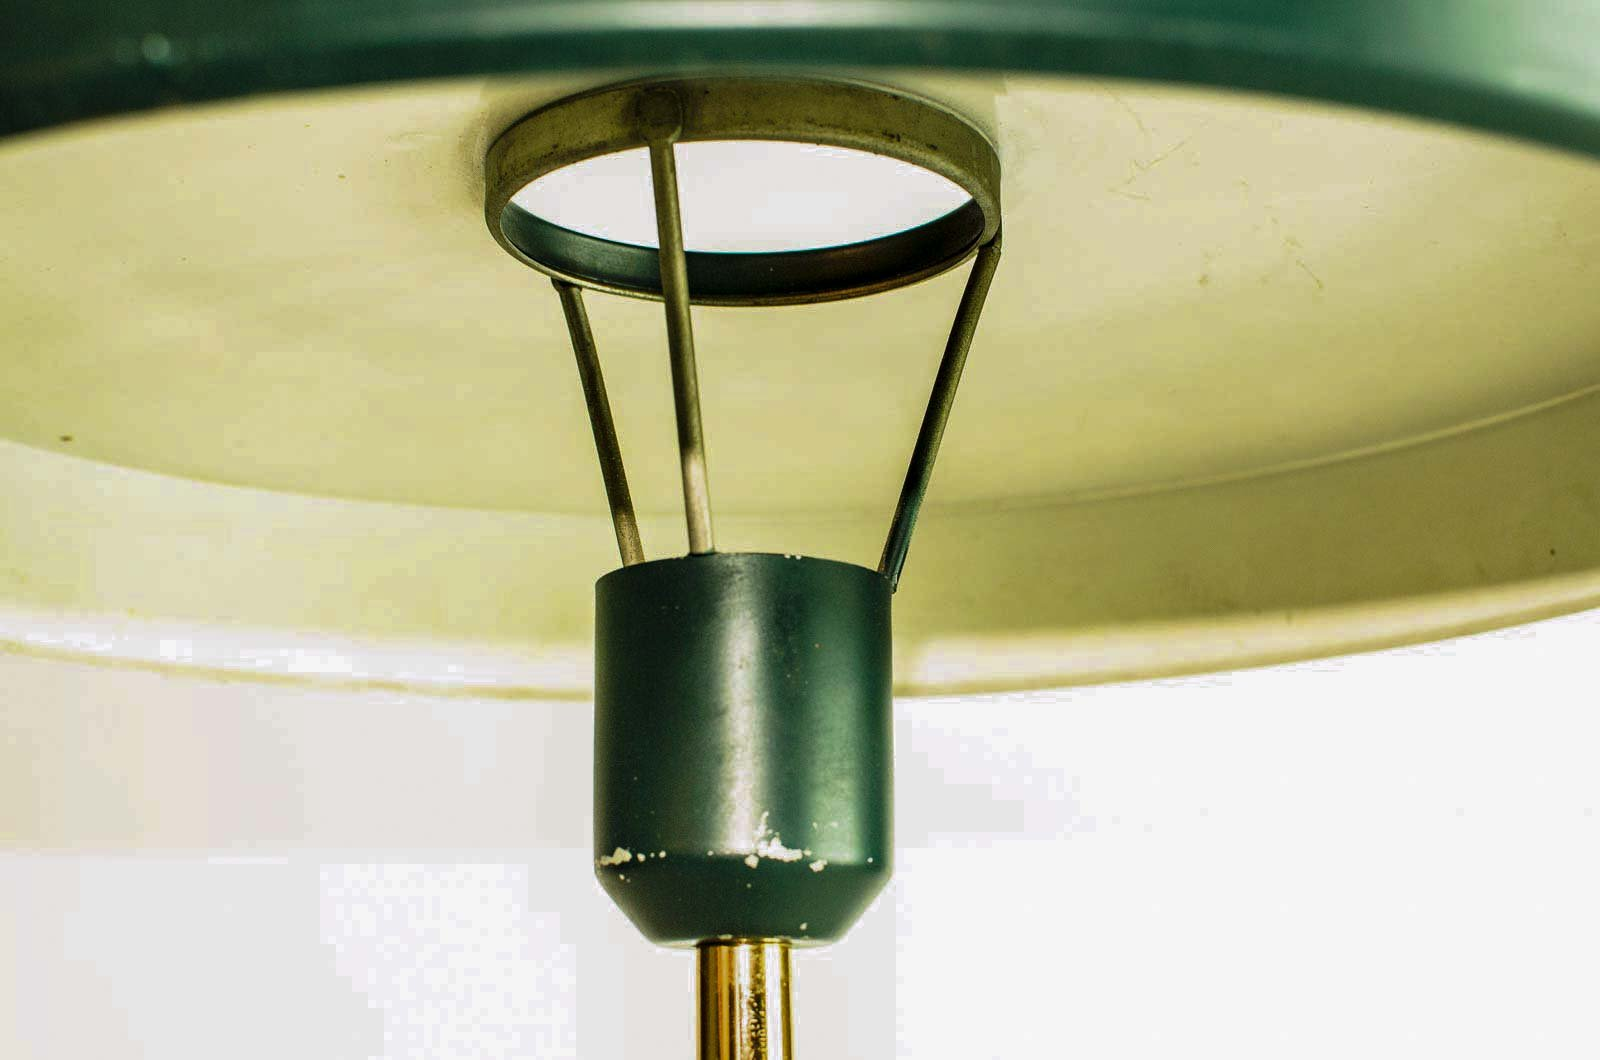 Timor 69 Table Lamp By Louis Kalff For Philips, 1950s For